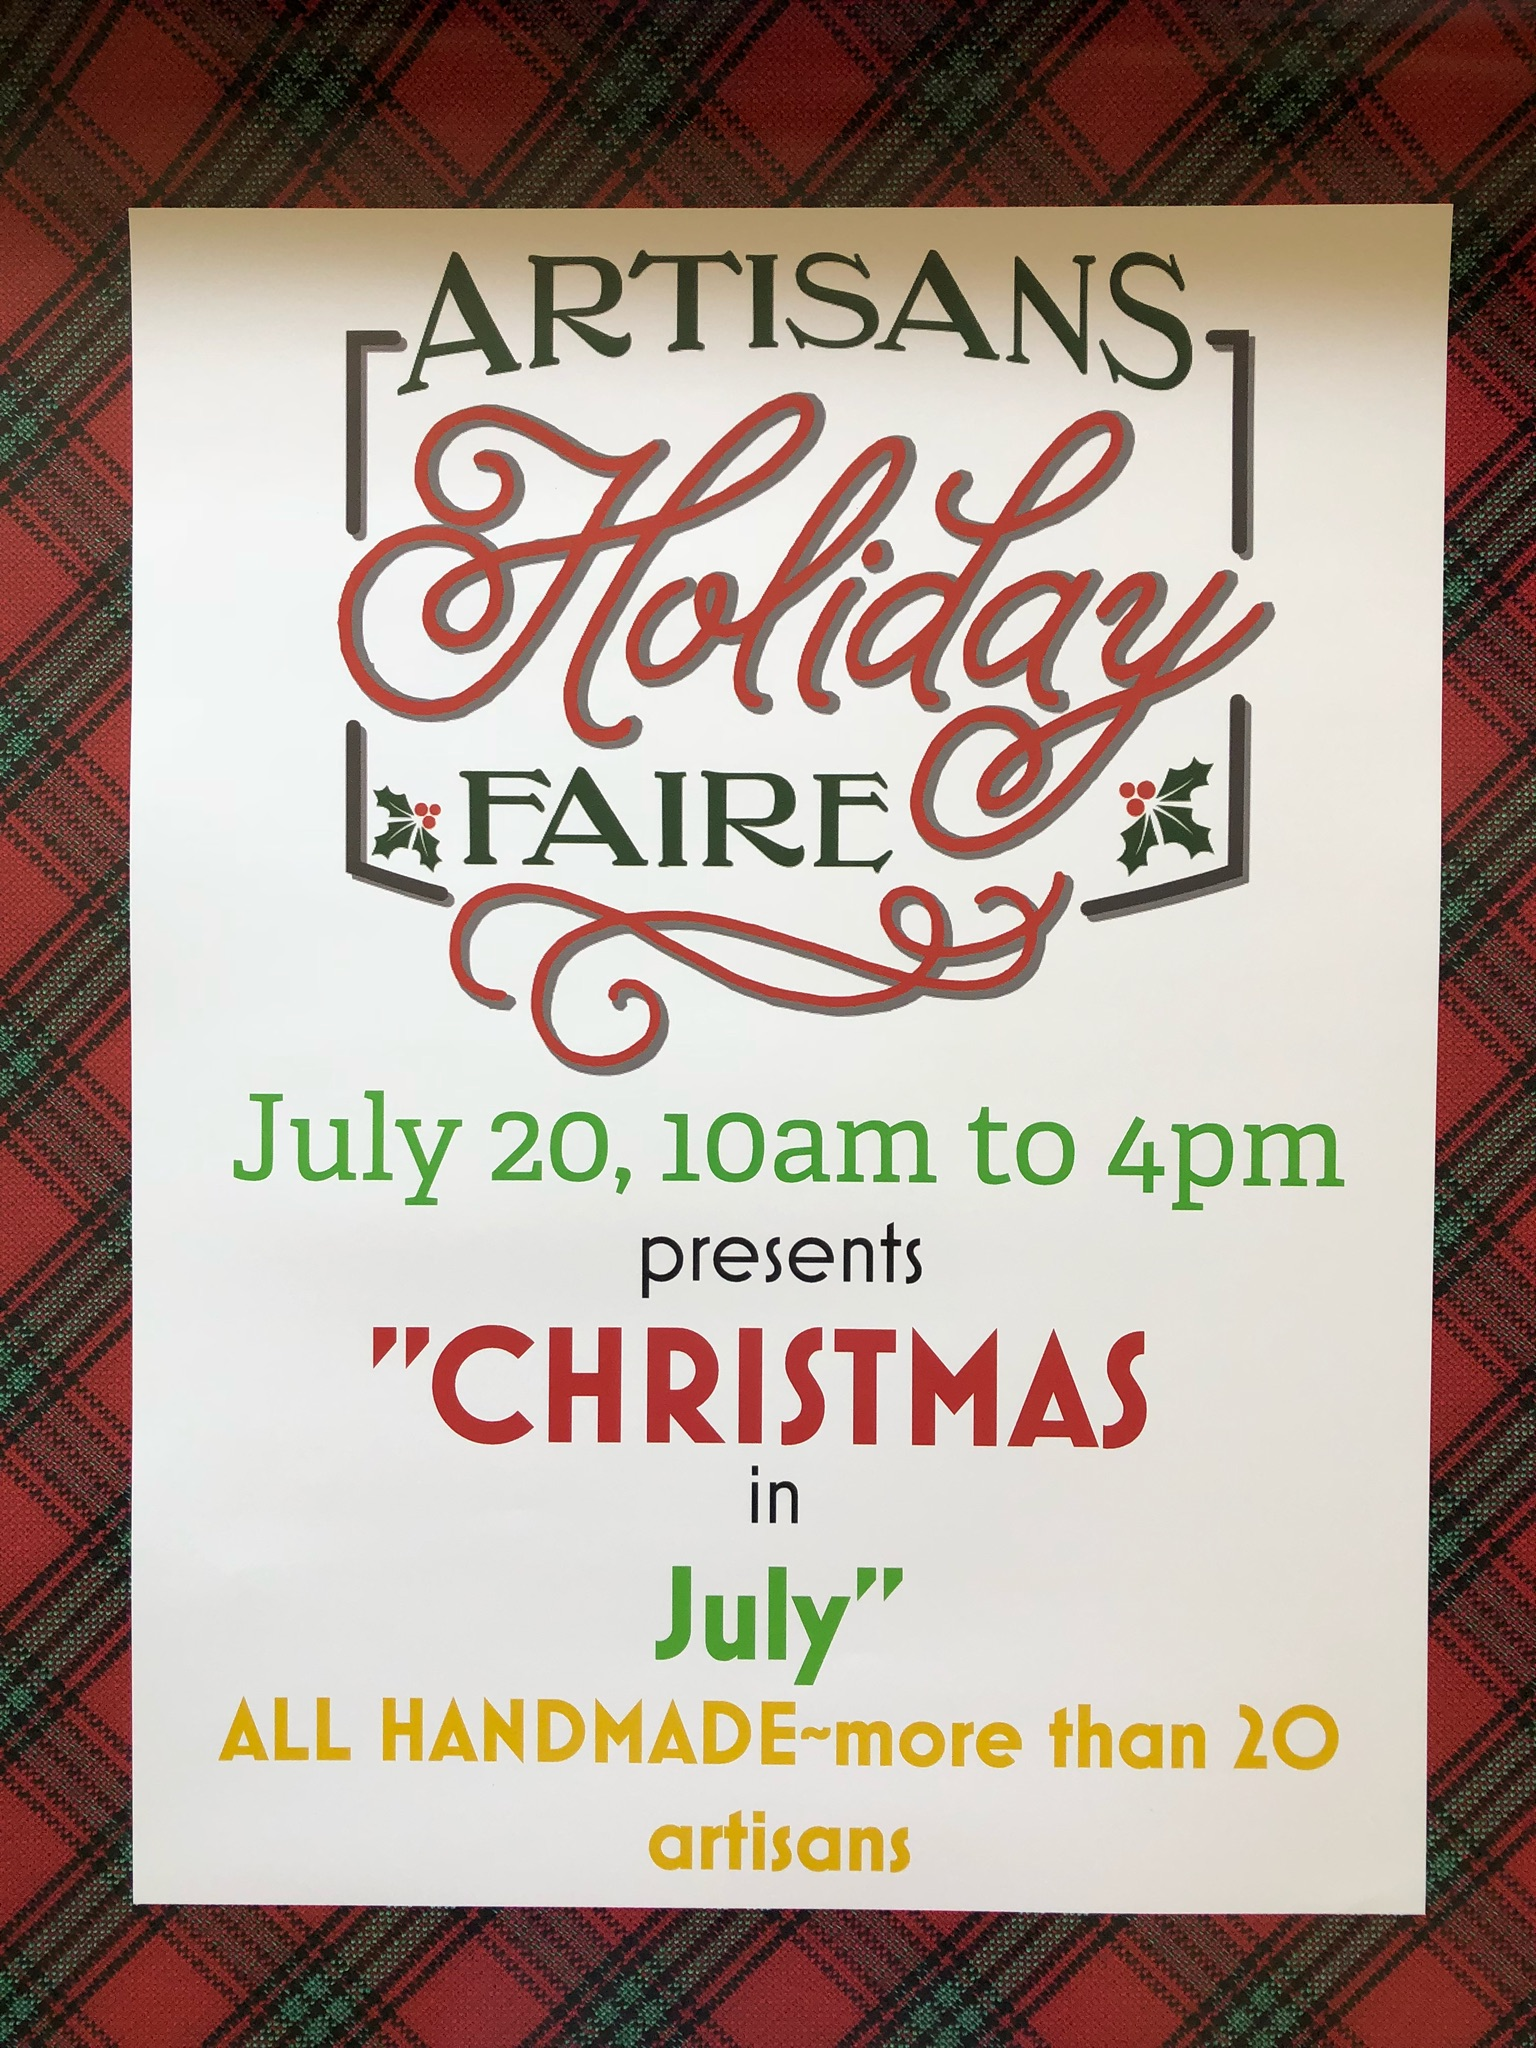 Christmas plaid and information about Artisans Holiday Faire